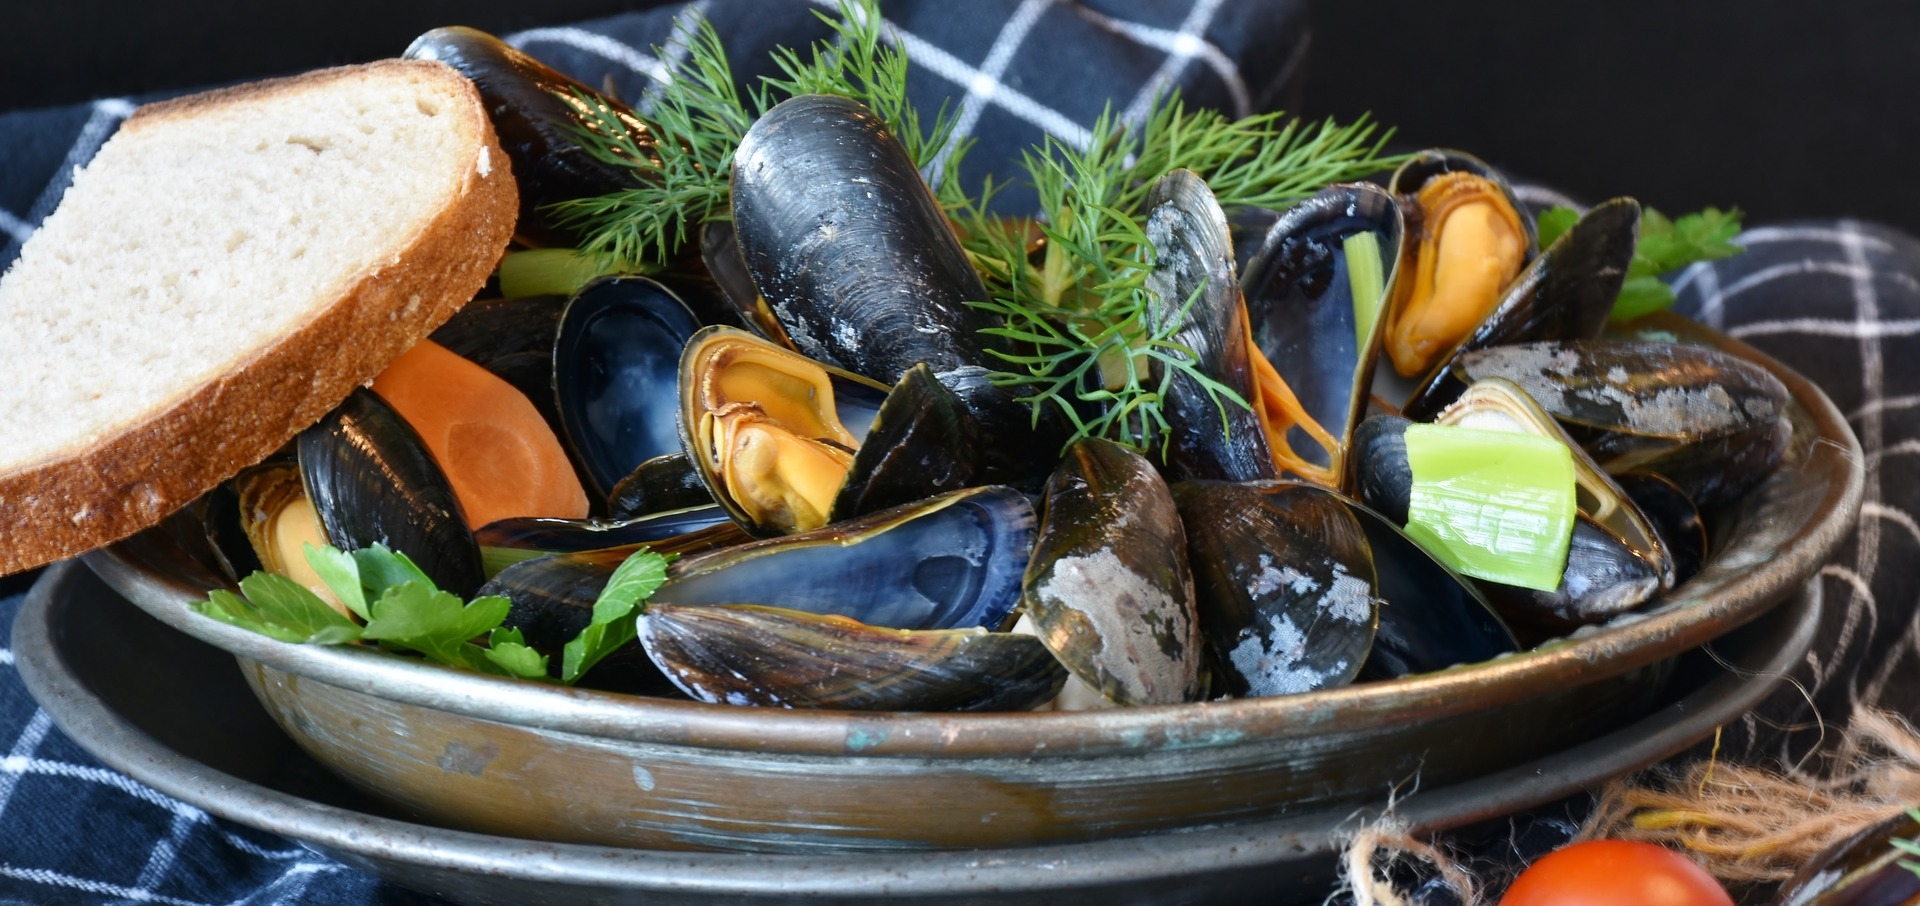 mussels-3148439_1920